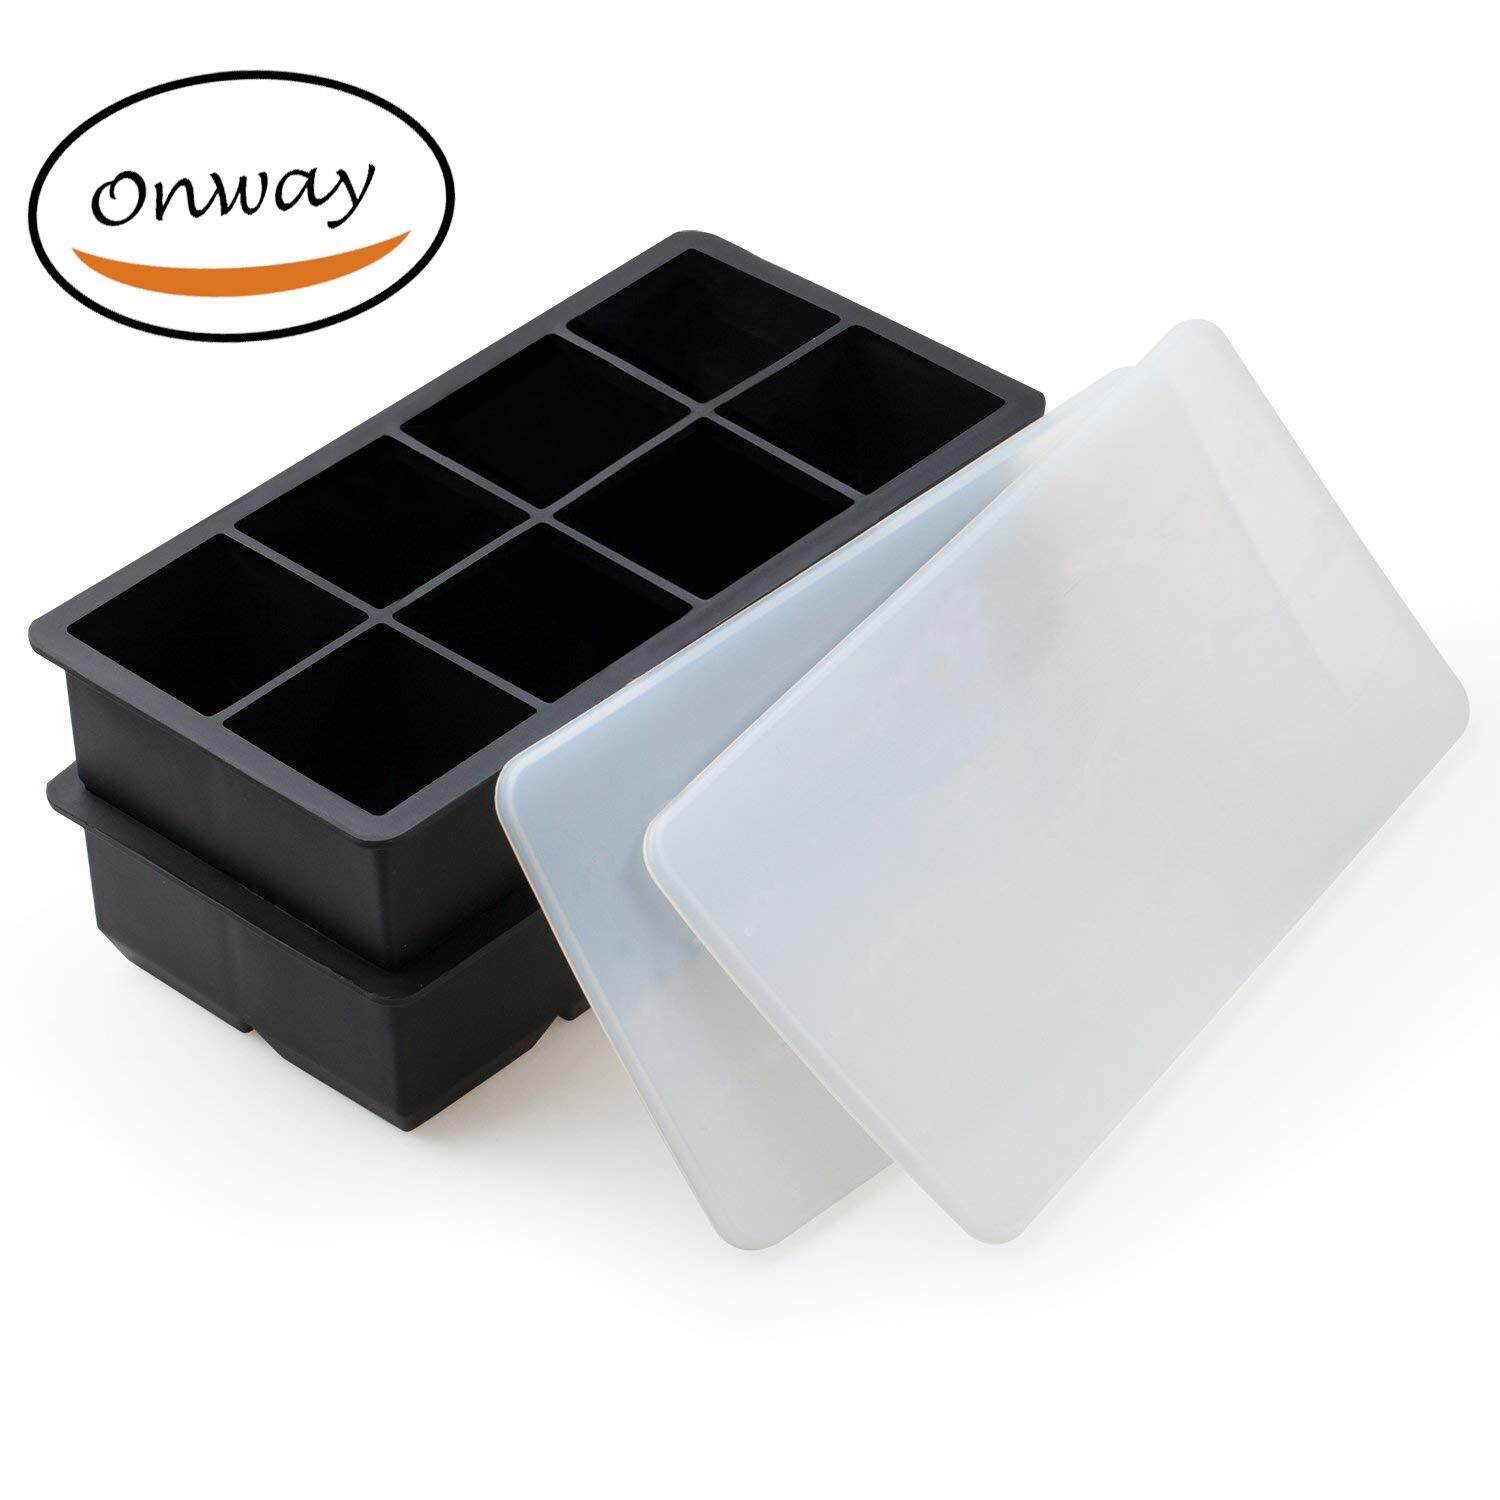 Ice Cube Tray With Lids 2-Inch Large Size Silicone Flexible 8 Cavity Ice Maker For Whiskey And Cocktails, Keep Drinks Chilled (2pc/pack) By Onway.